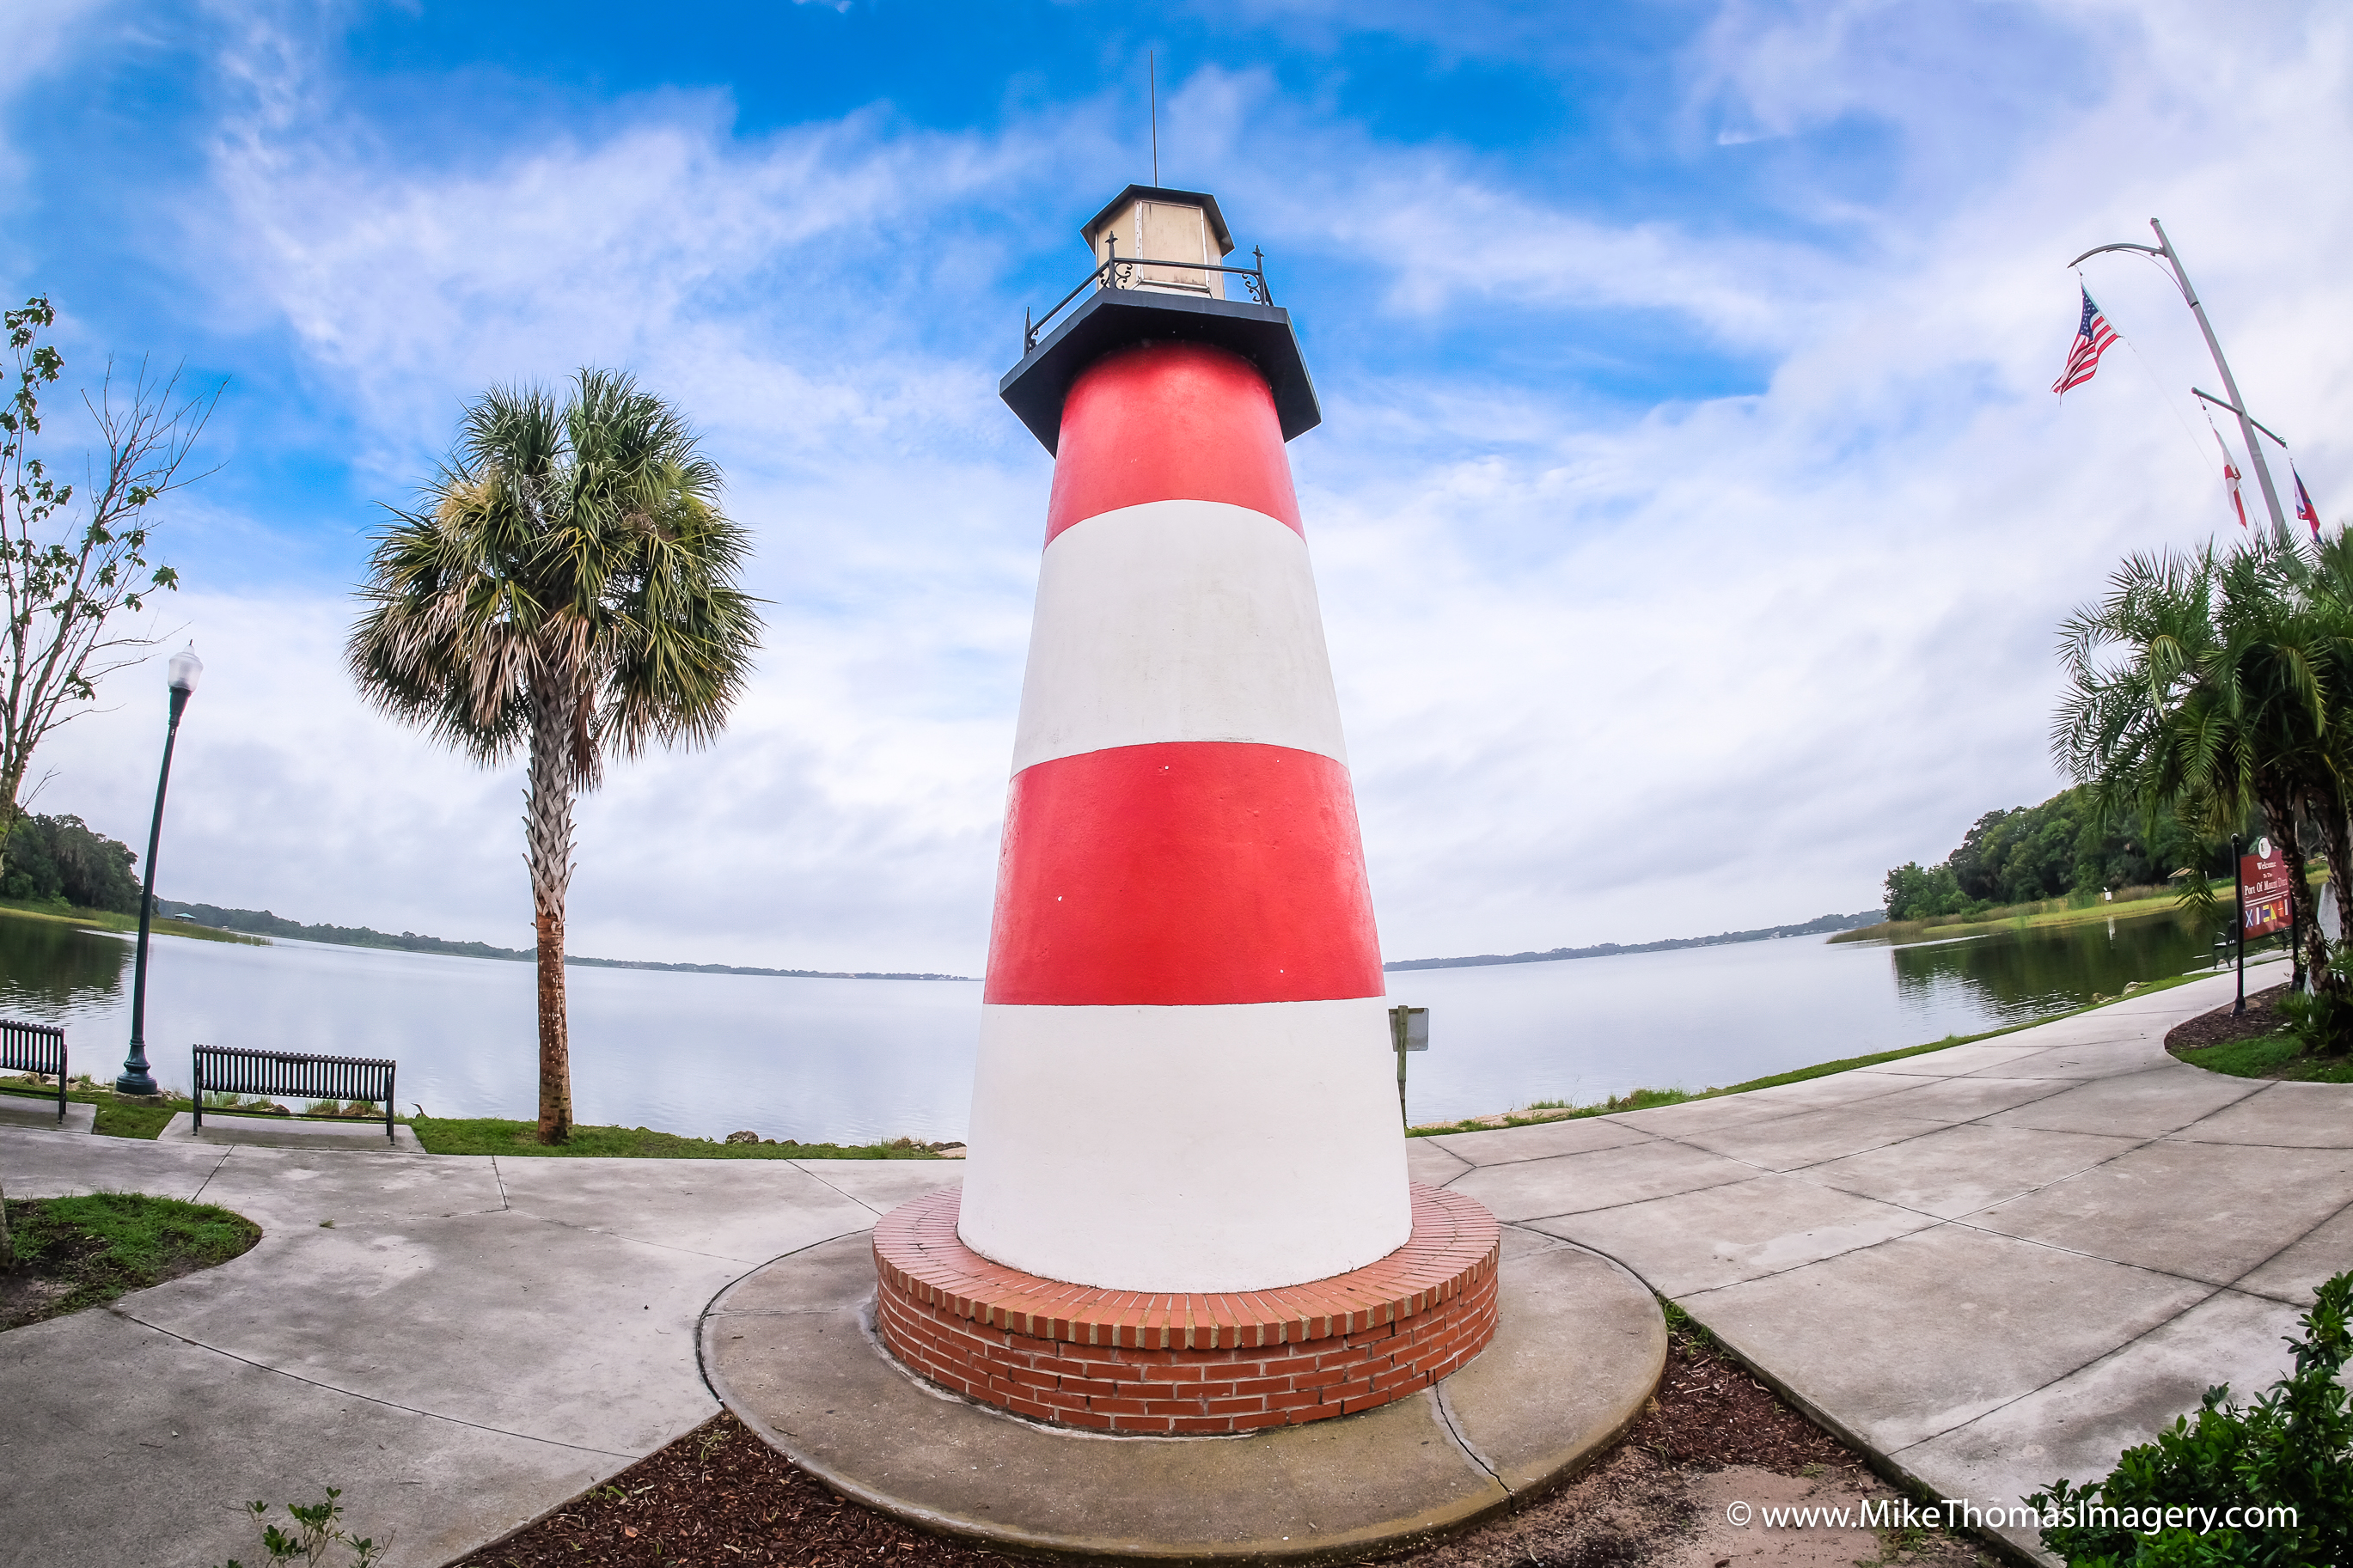 lighthouses, florida, mount dora florida, nature, landscape, mariner, boating, lake, water, ocean